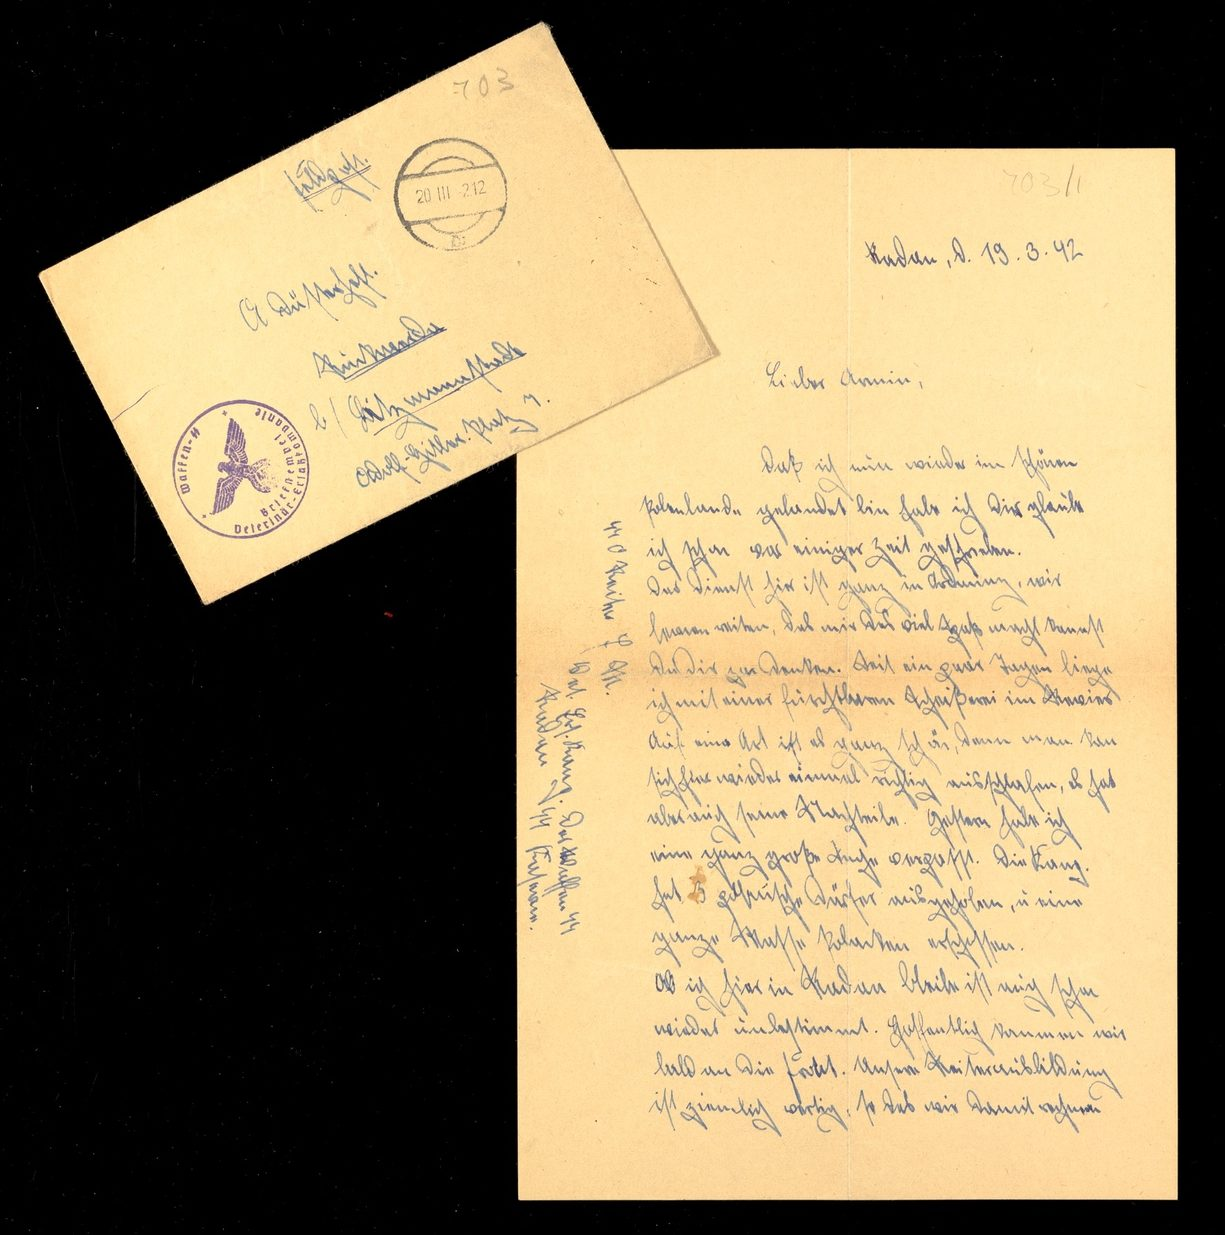 Handwritten letter complete with envelope featuring Nazi insignia